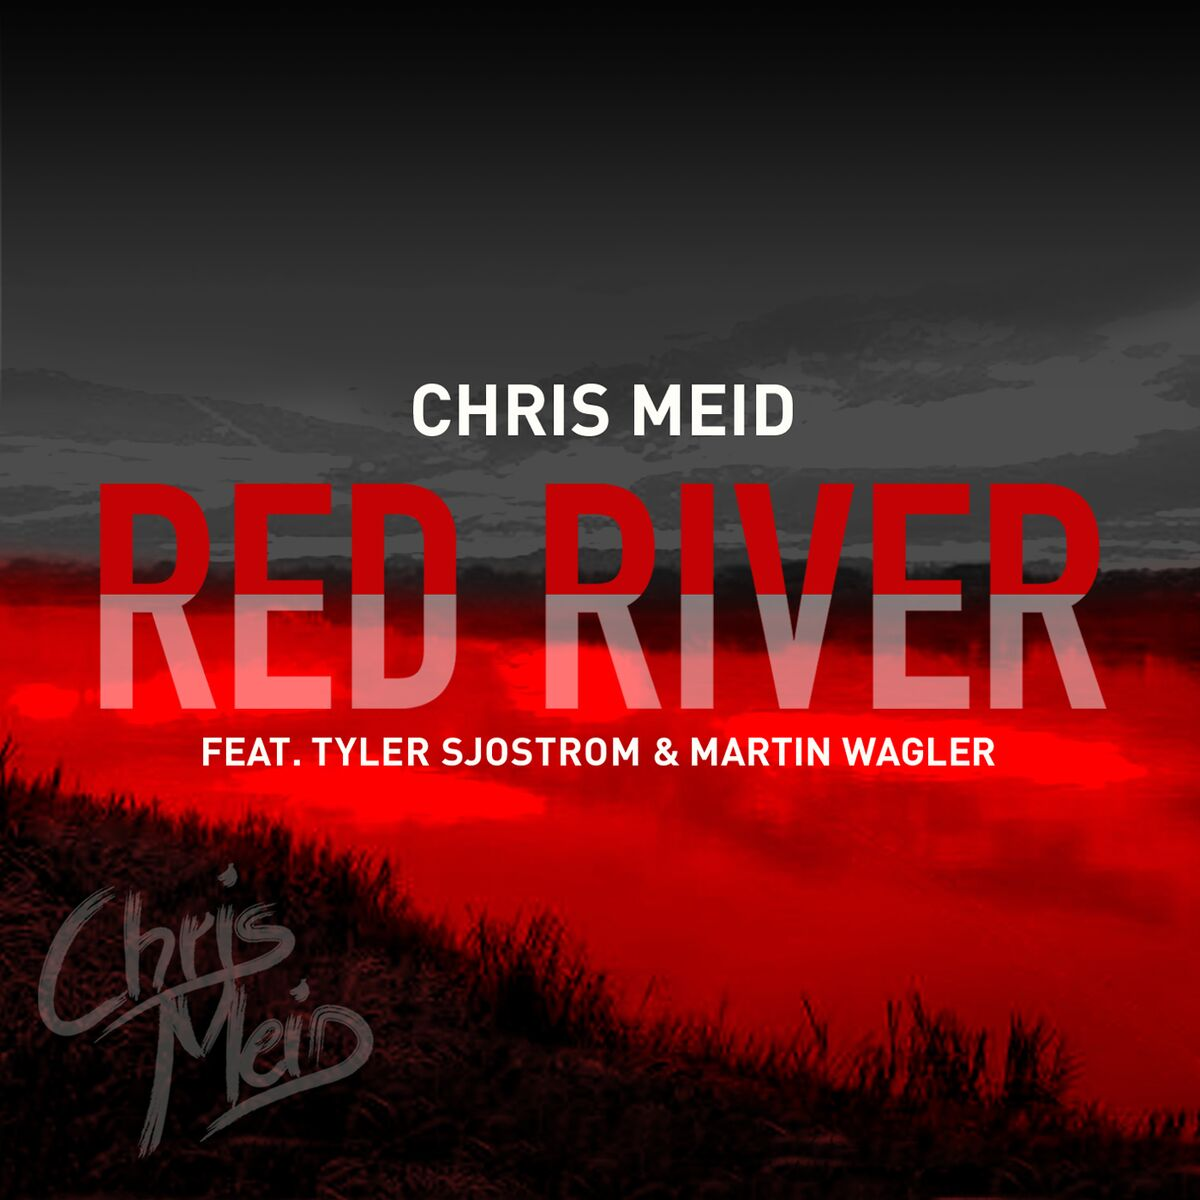 Chris Meid – Red River – IAATM Katermucke